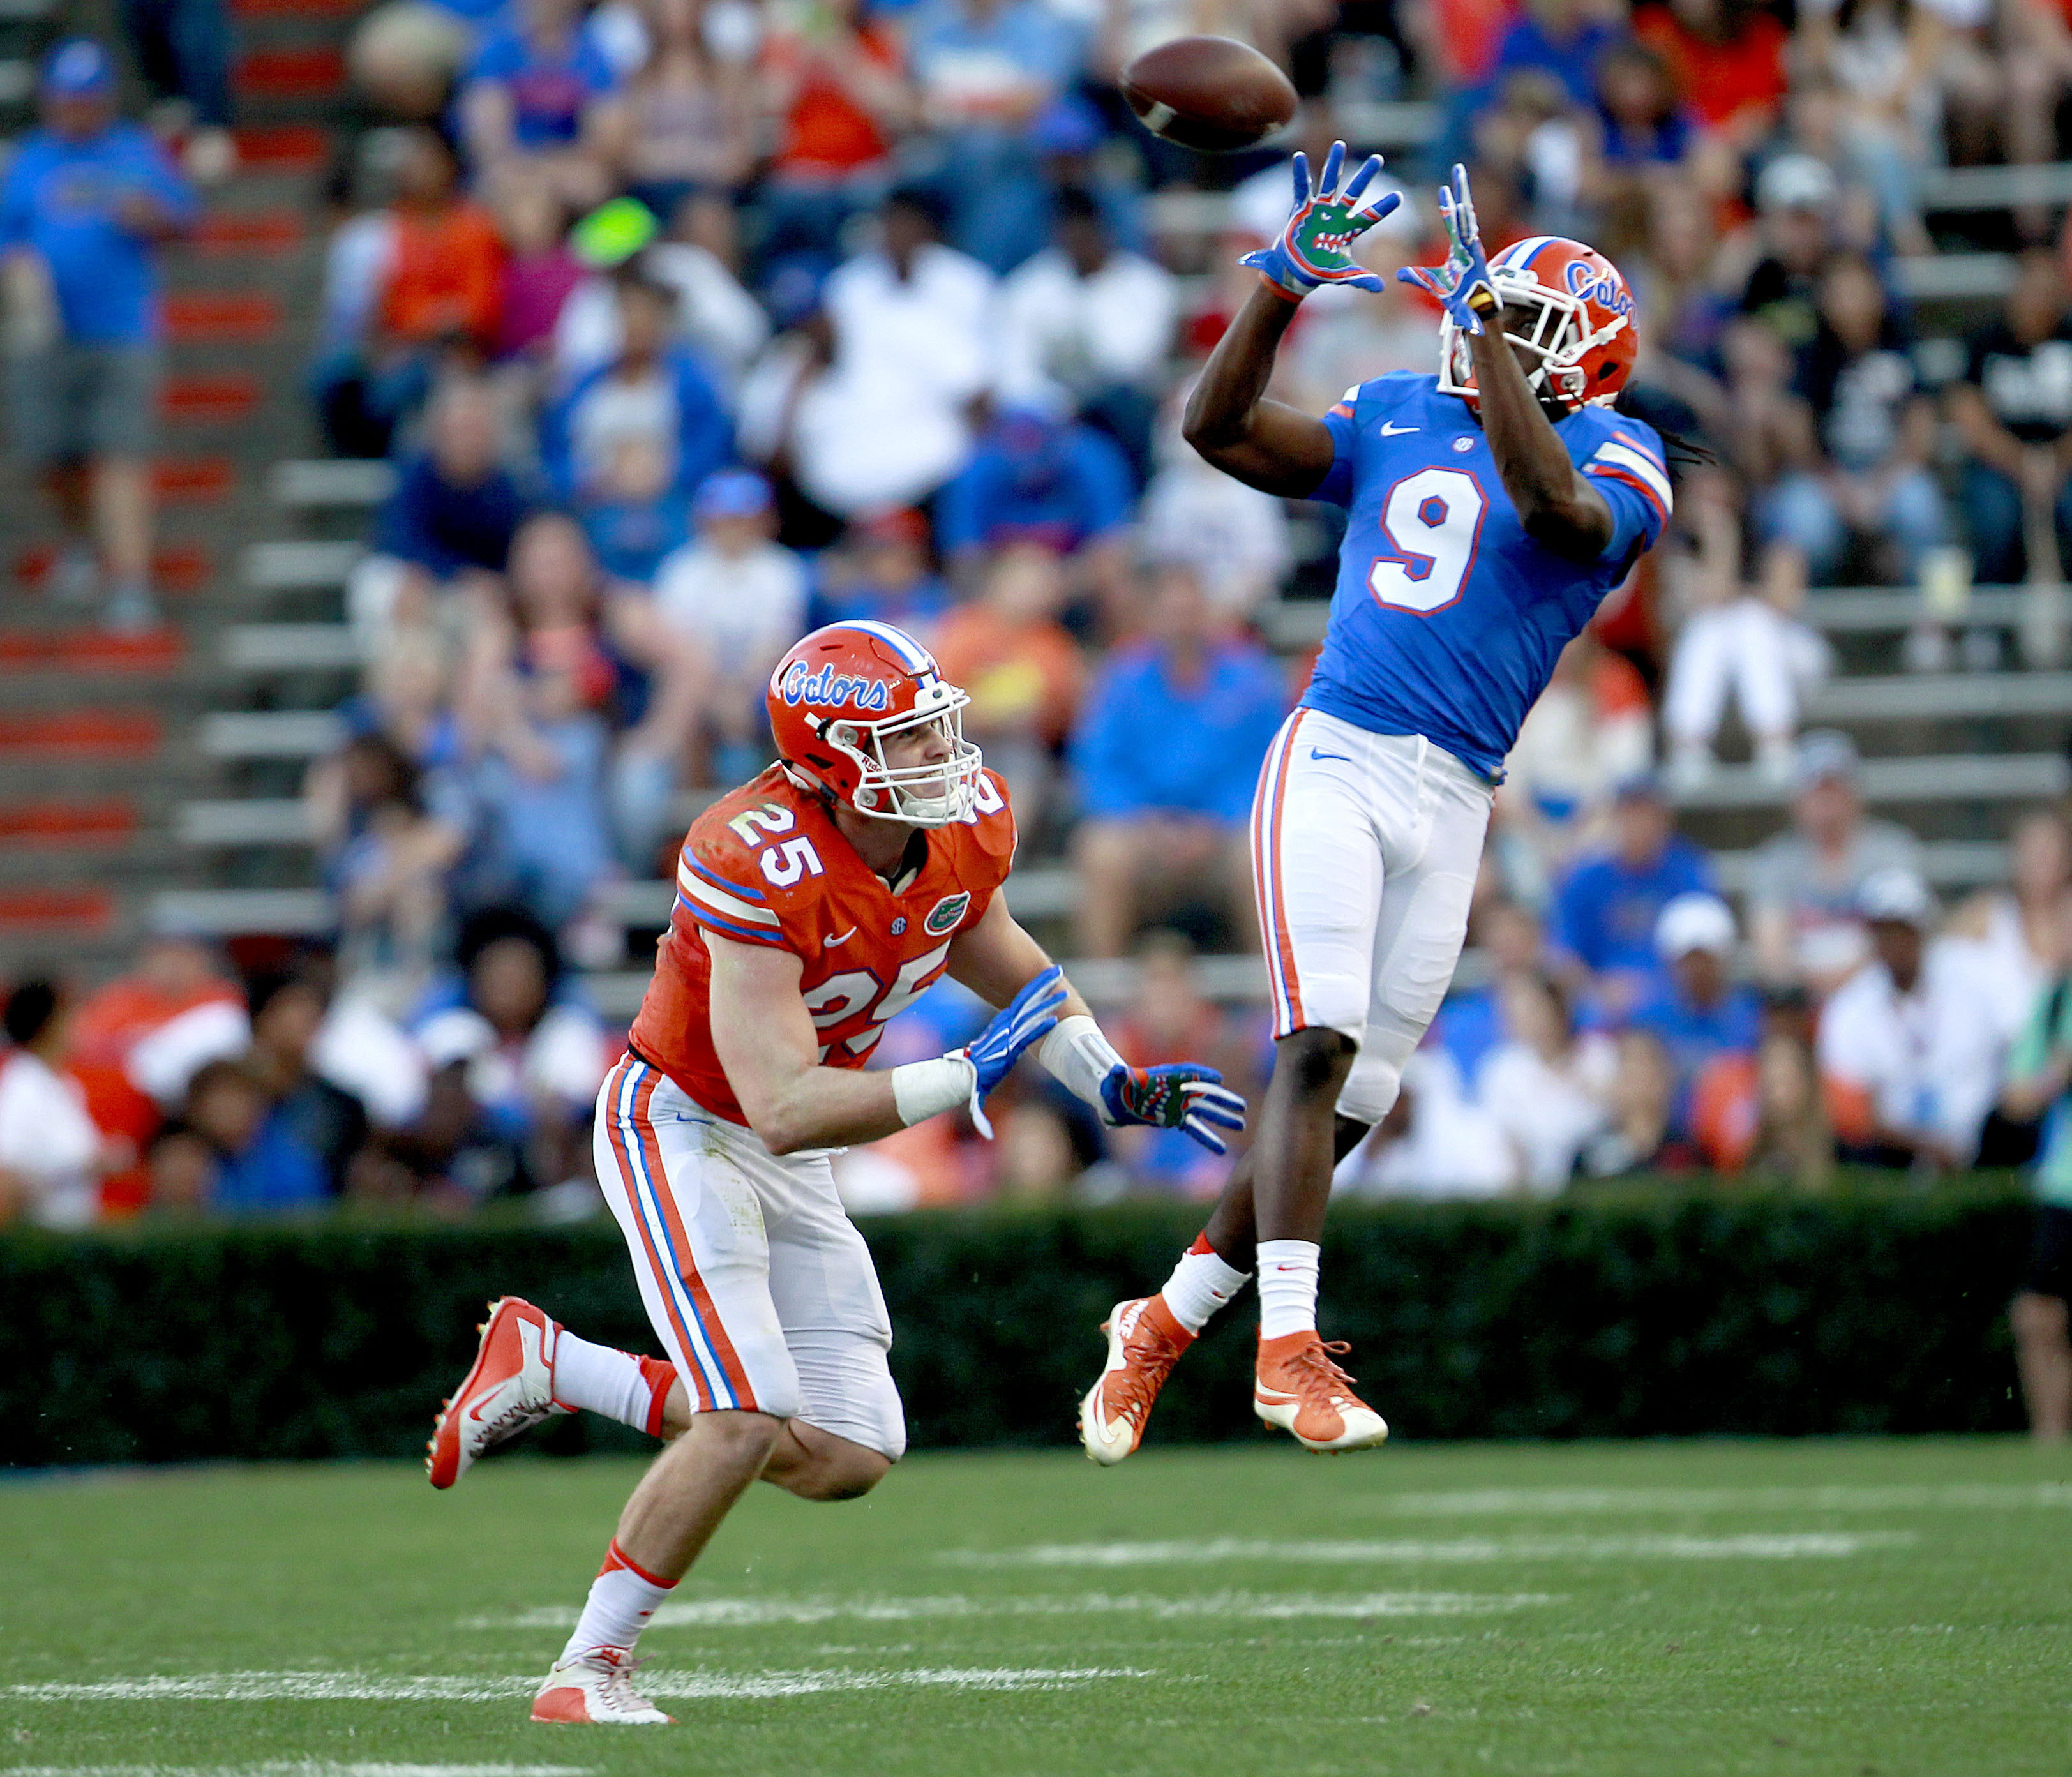 In this April 8, 2016, file photo, Florida receiver Dre Massey jumps to make a catch in front of Florida linebacker Matt Rolin during a spring football game in Gainesville, Fla. Massey is Florida's most versatile player, capable of lining up at receiver,